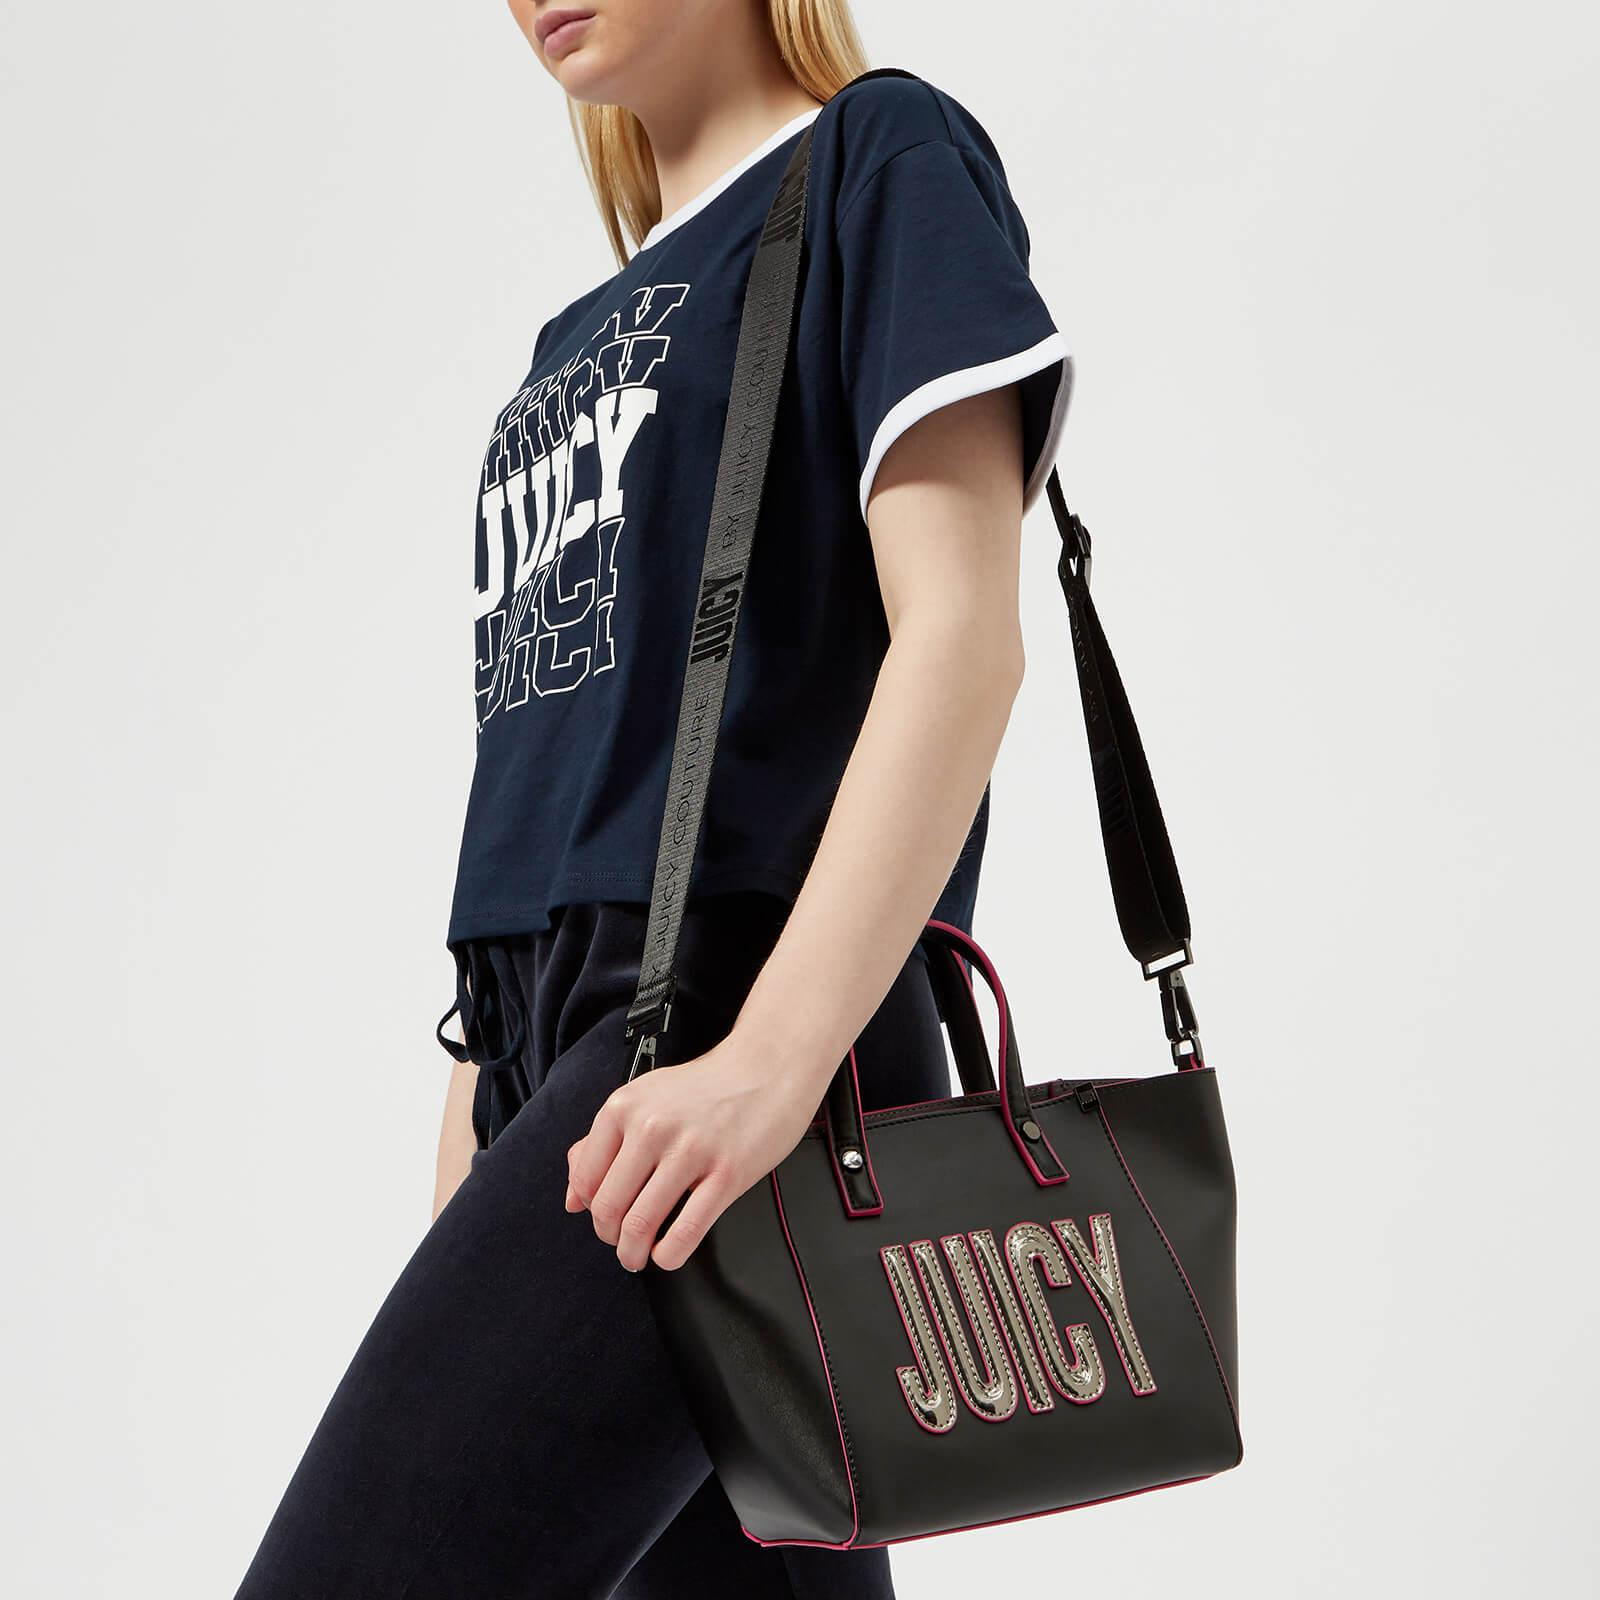 87953be77 Juicy Couture Arlington Mini Soft Tote Bag in Black - Lyst